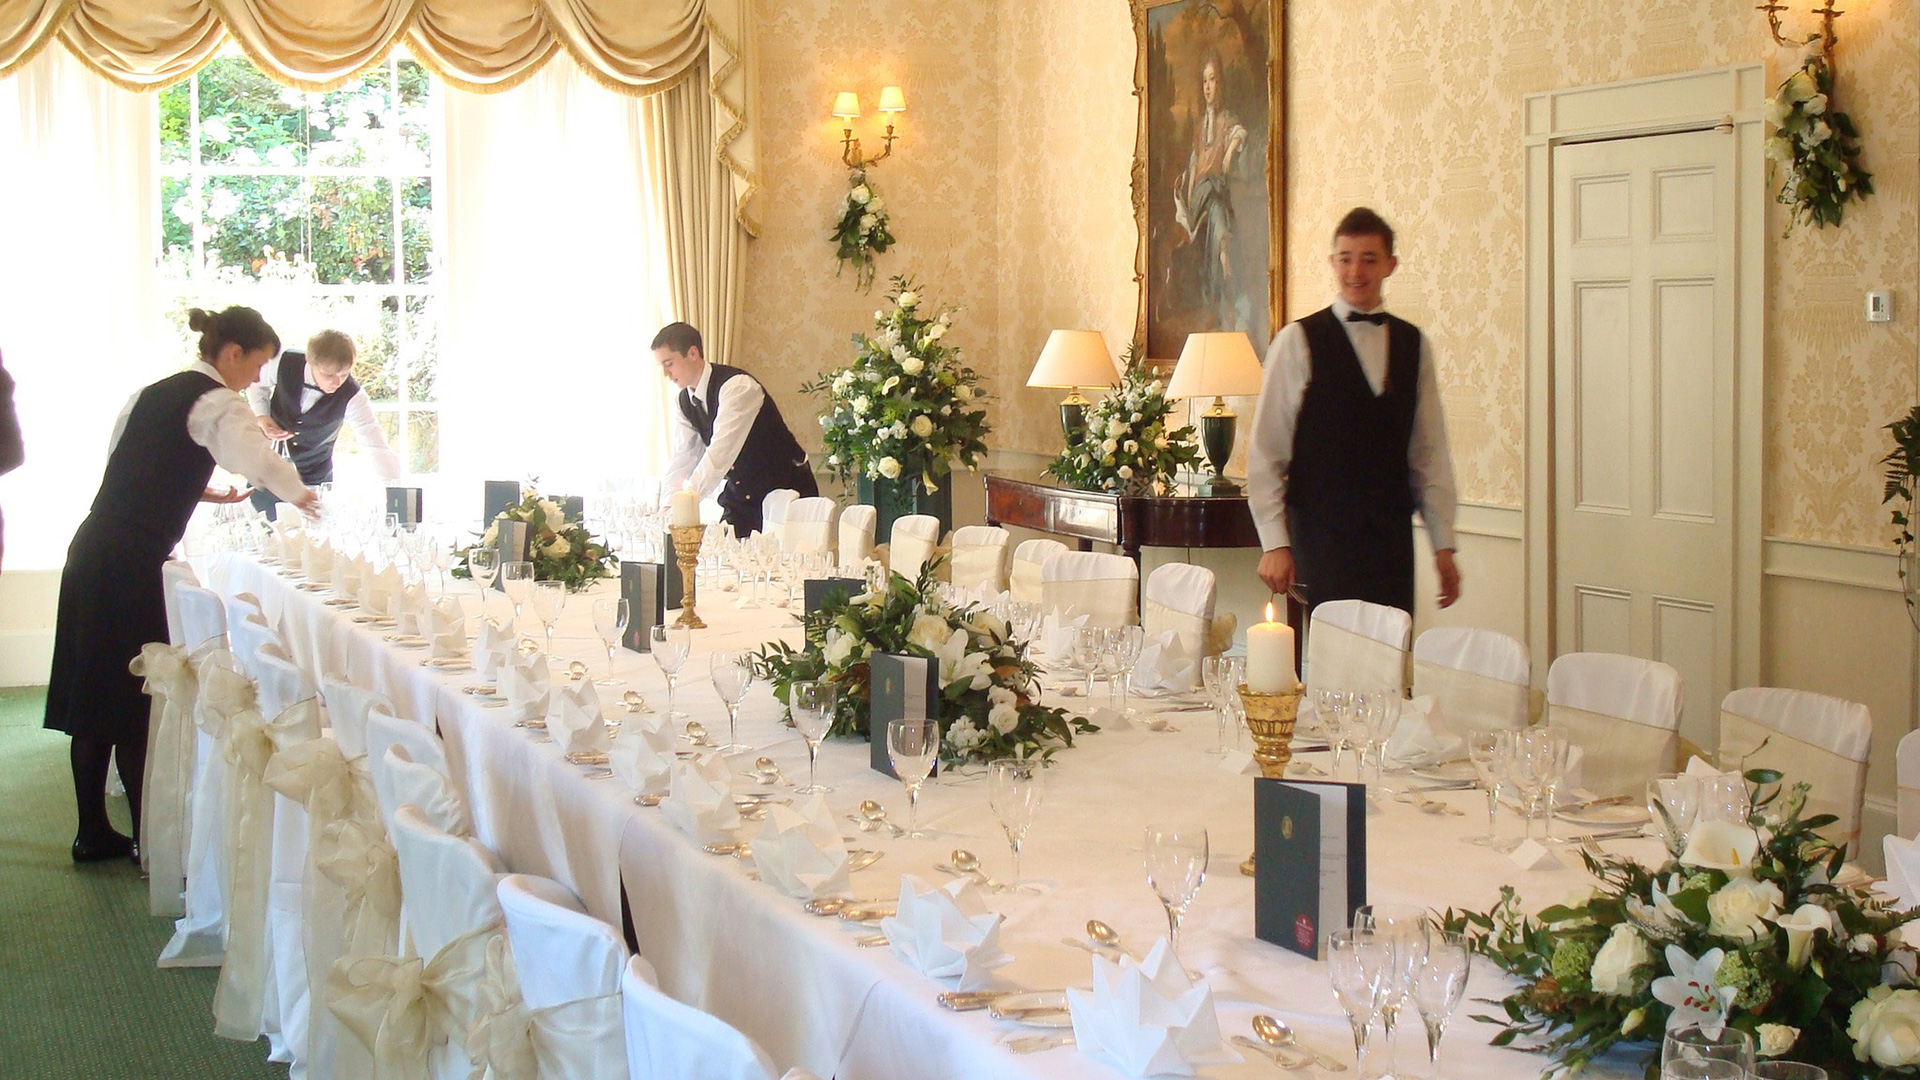 Hartwell House Can Ist With A Number Of Extras That You Shouldn T Have To Worry About On Your Special Day But Are Great Importance Create The